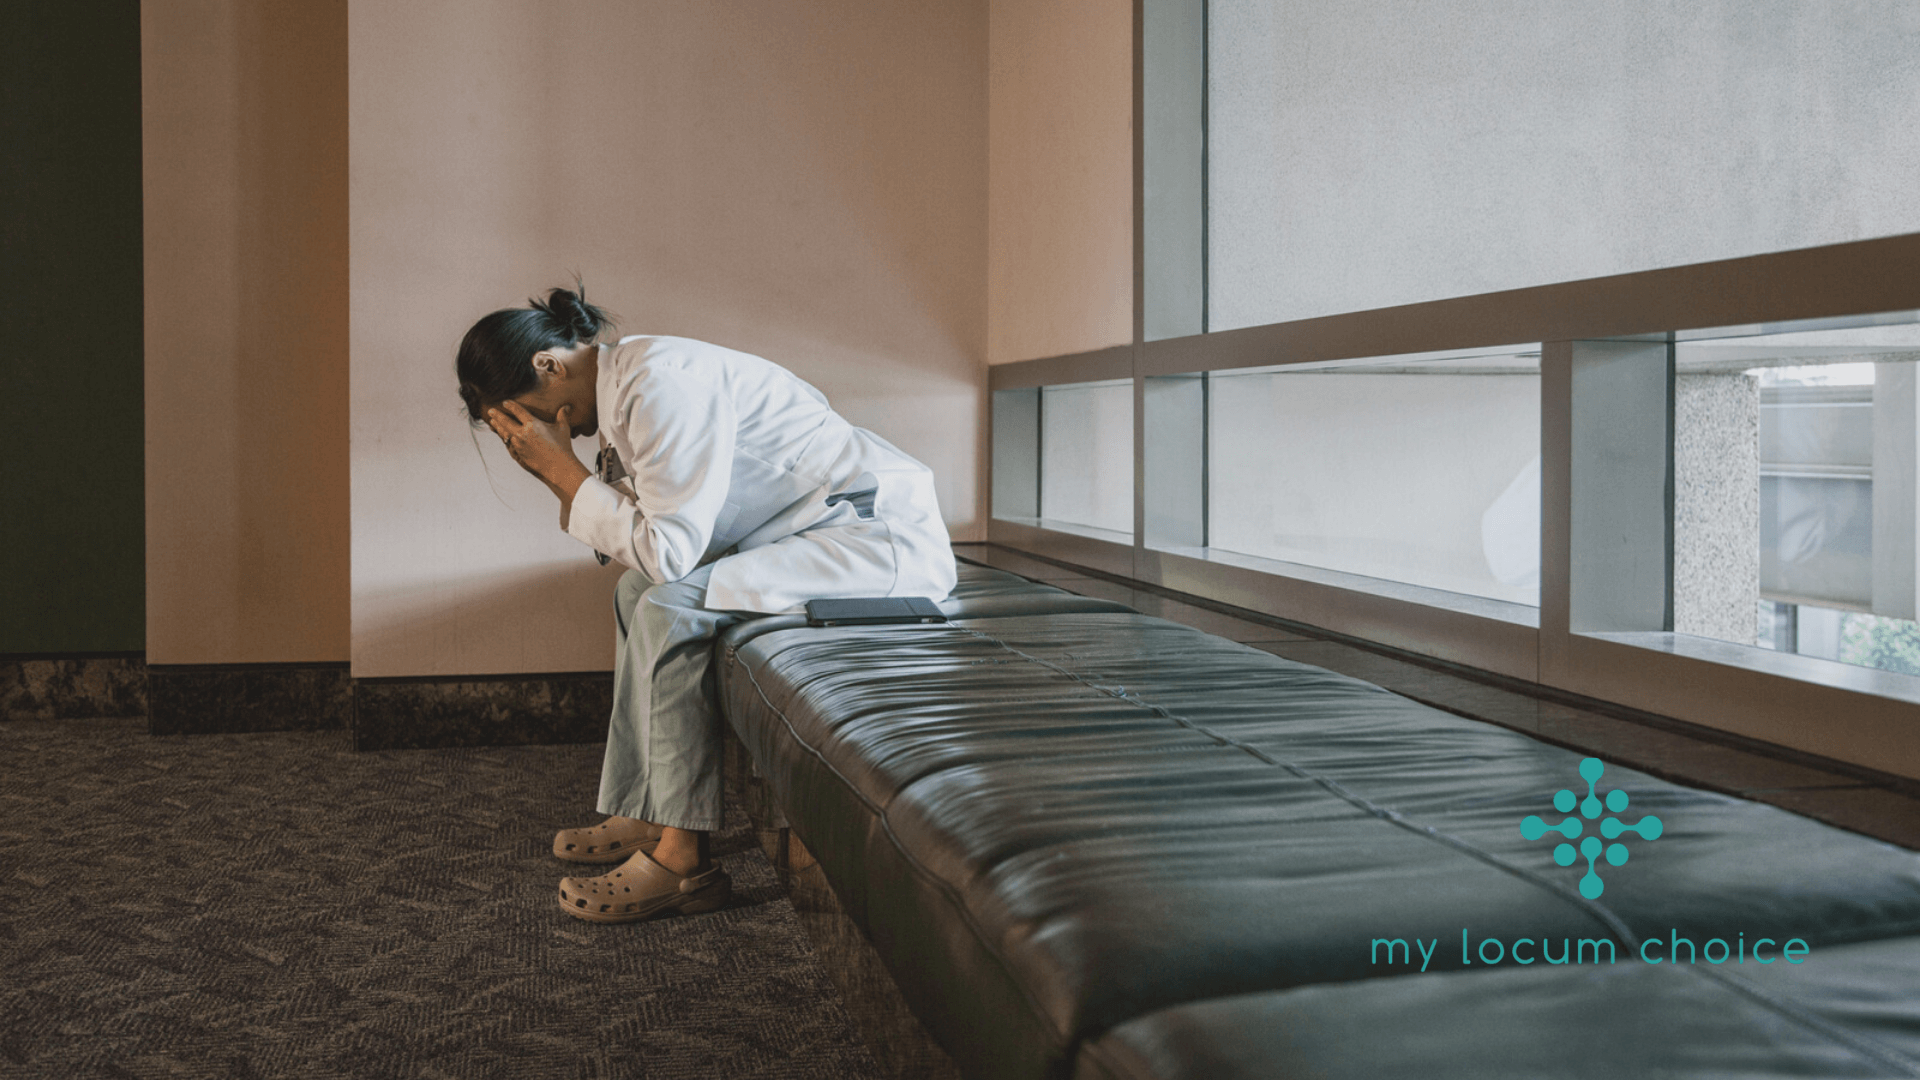 A pharmacist in distress during coronavirus pandemic Coping with stress for pharmacy workers